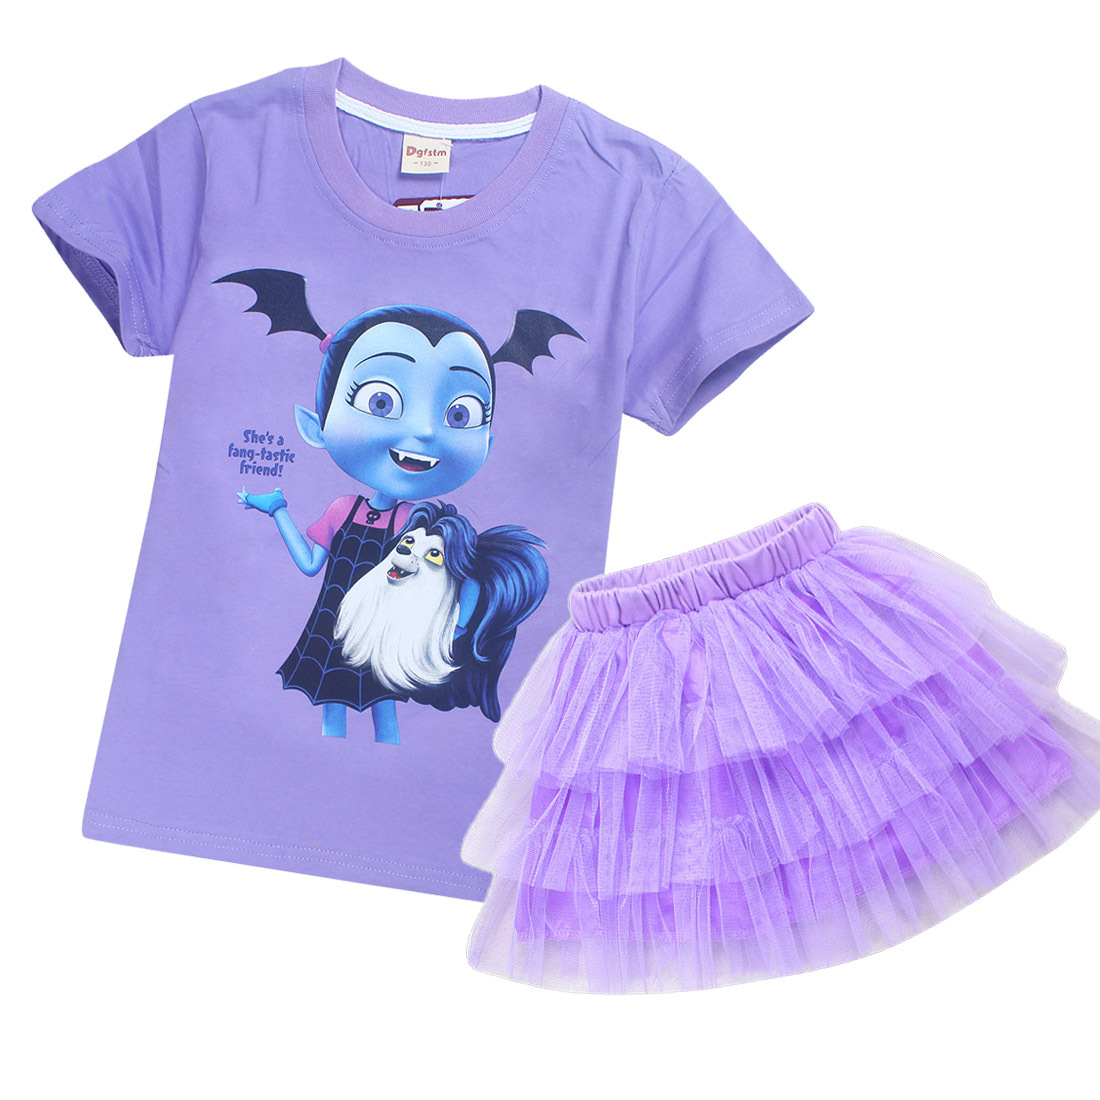 Childrens Set Princess Girls Summer Dresses Junior Vampirina Cosplay Costume Kids Birthday Party Gift Tutu Fantastic Fluffy Veil